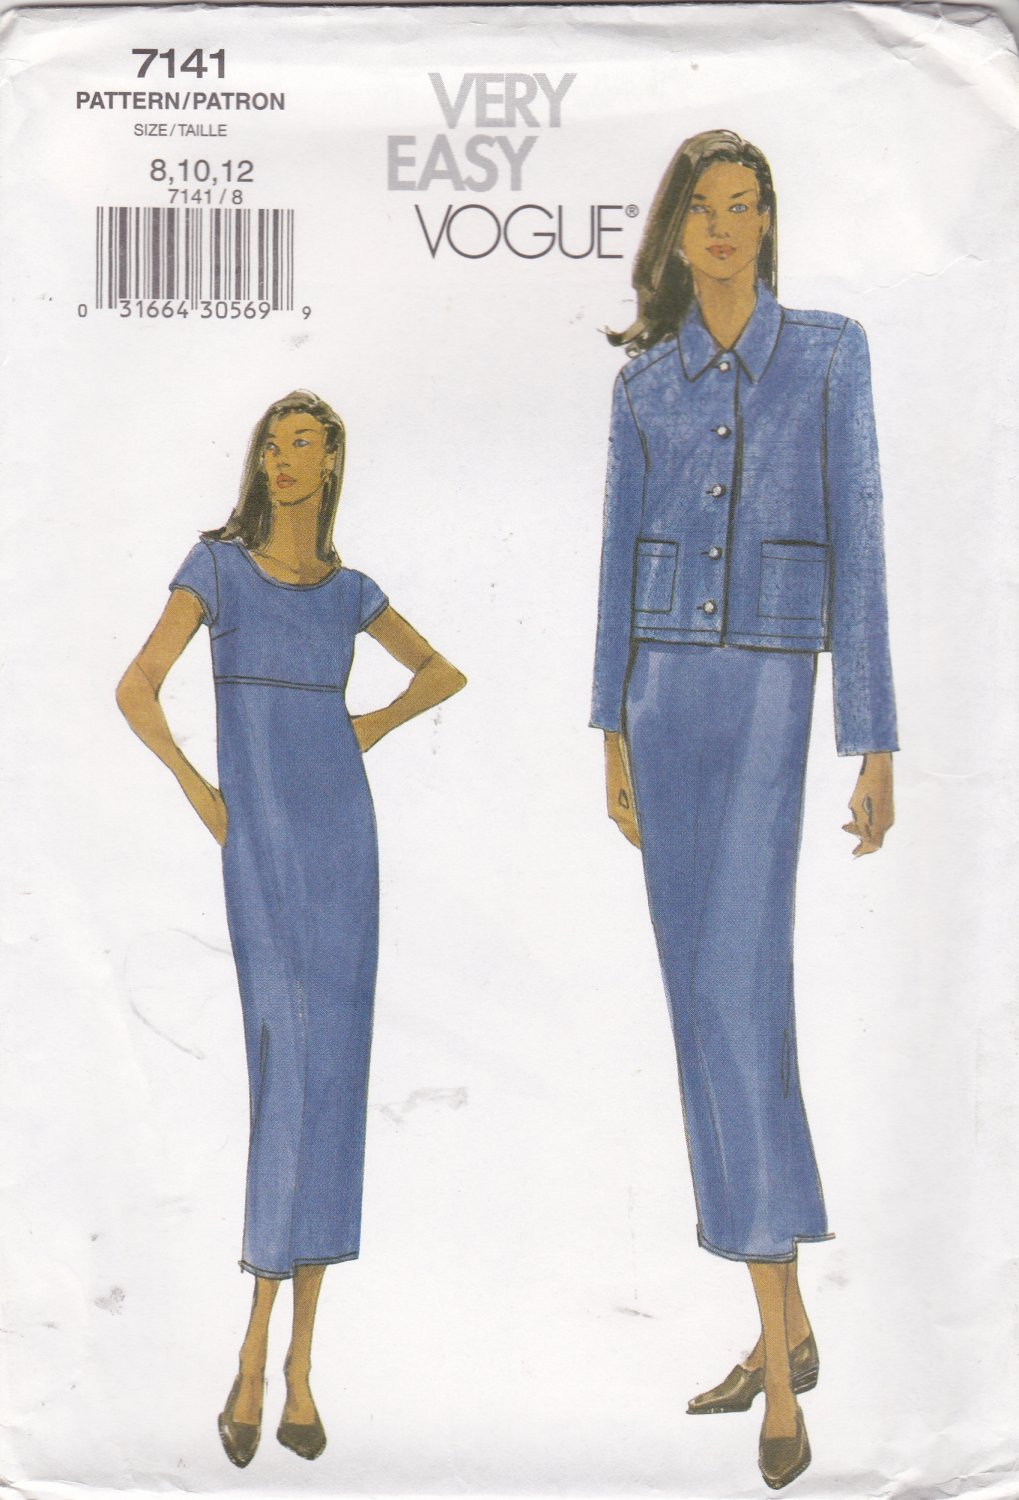 Vogue Sewing Pattern 7141 Misses Size 8-12 Easy Straight Dress Button Front Jacket